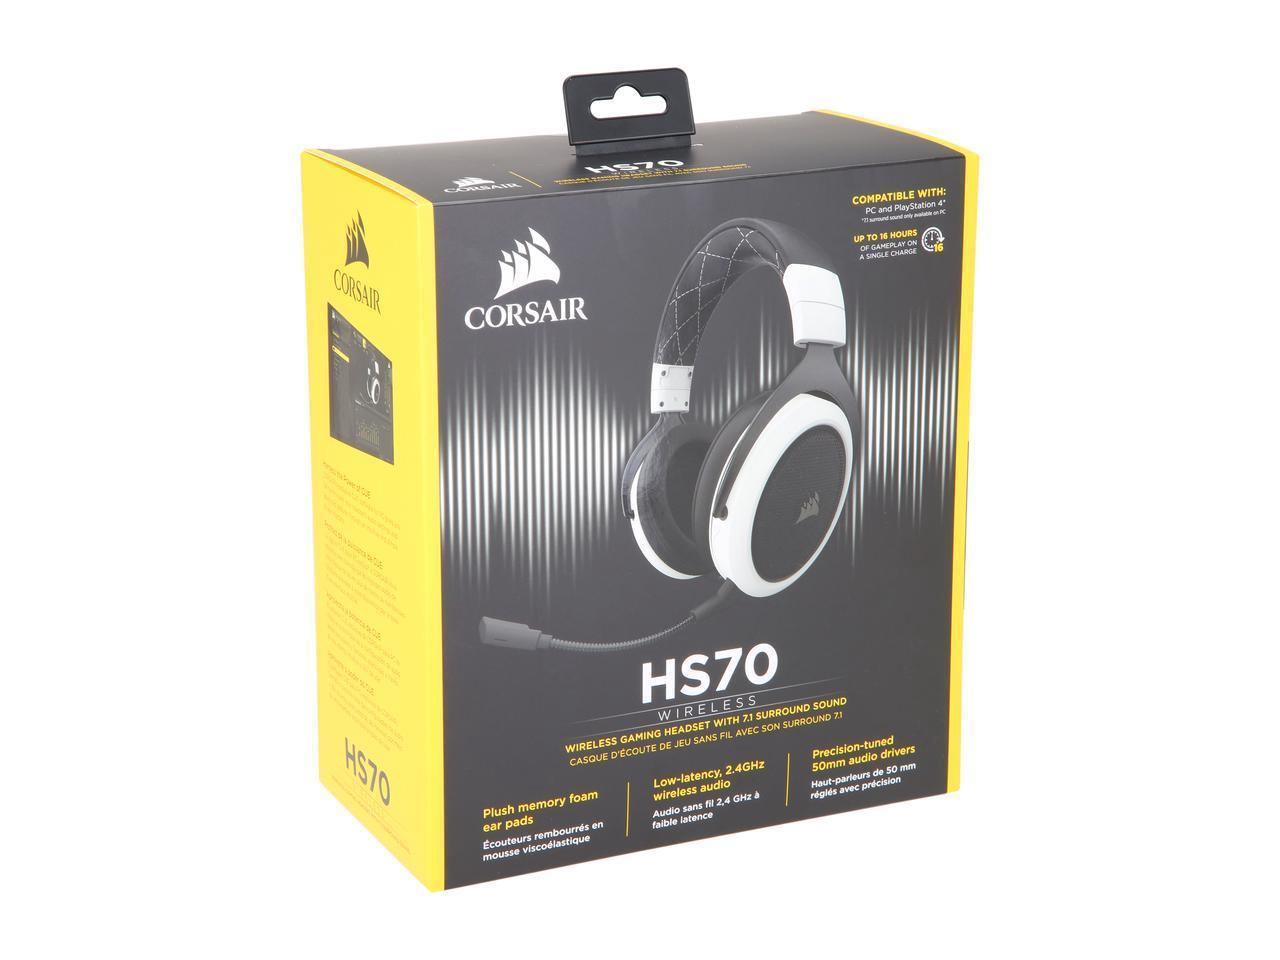 Corsair HS70 Wireless Gaming Headset With 71 Surround Sound